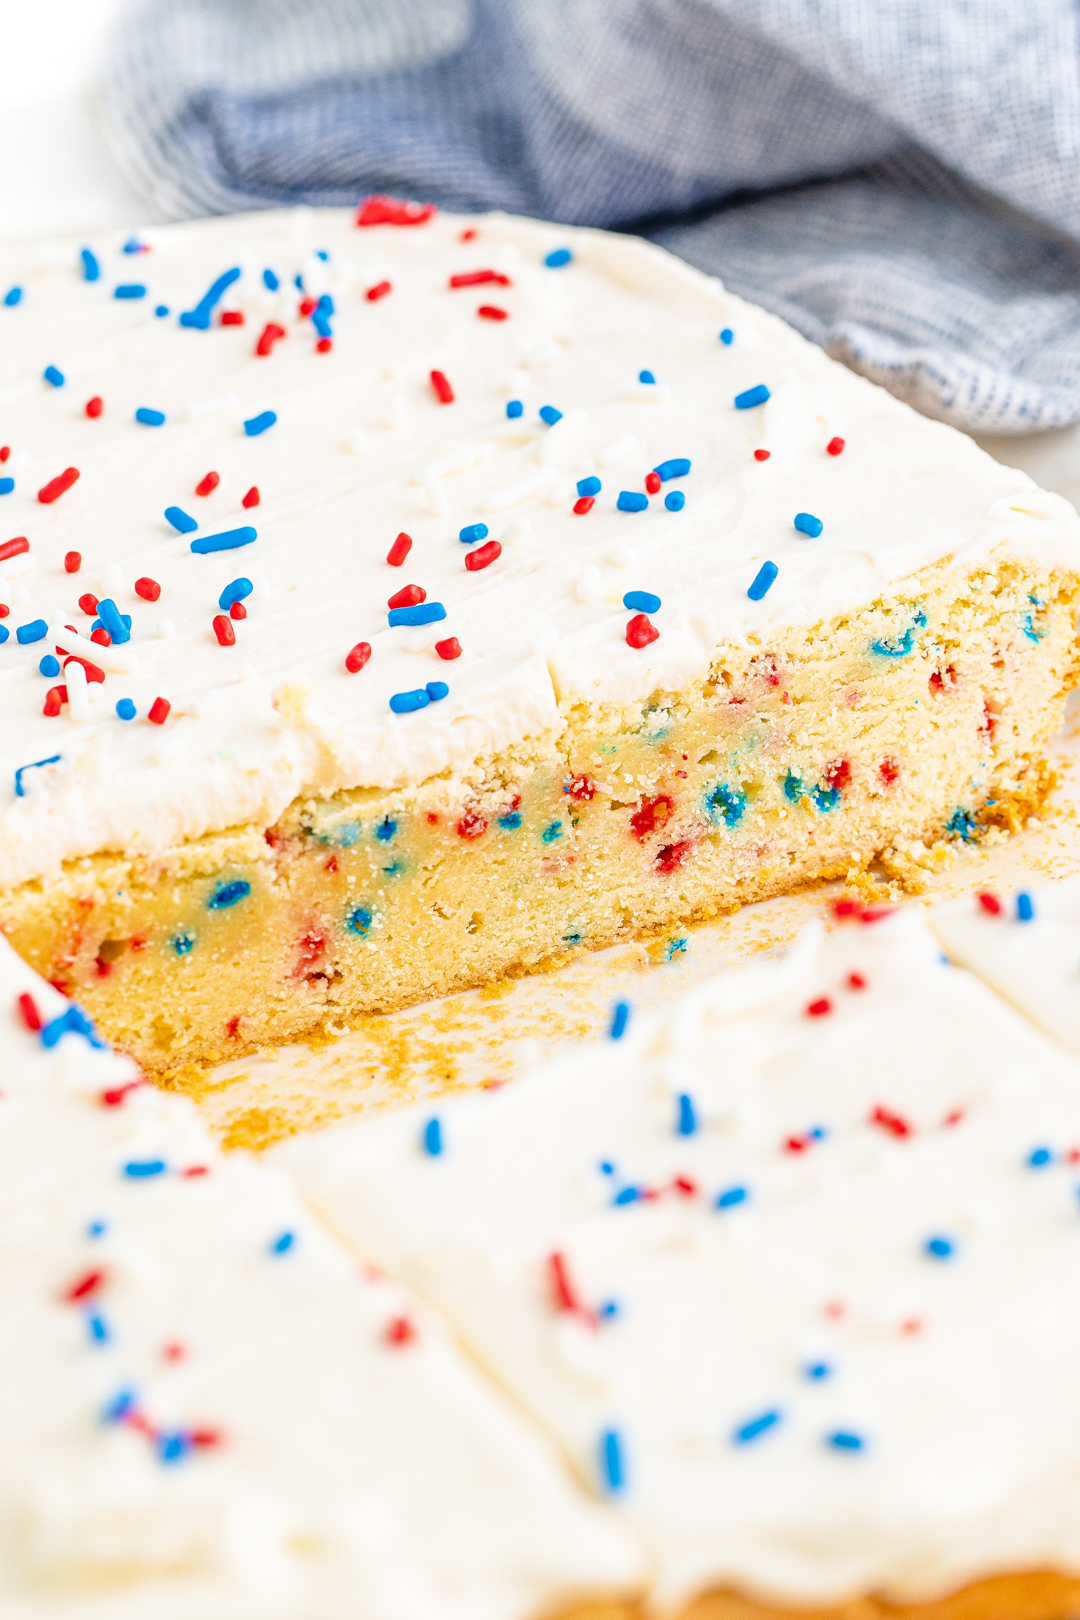 inside view of a huge sugar cookie slap with patriotic colored sprinkles inside and on top of frosting.